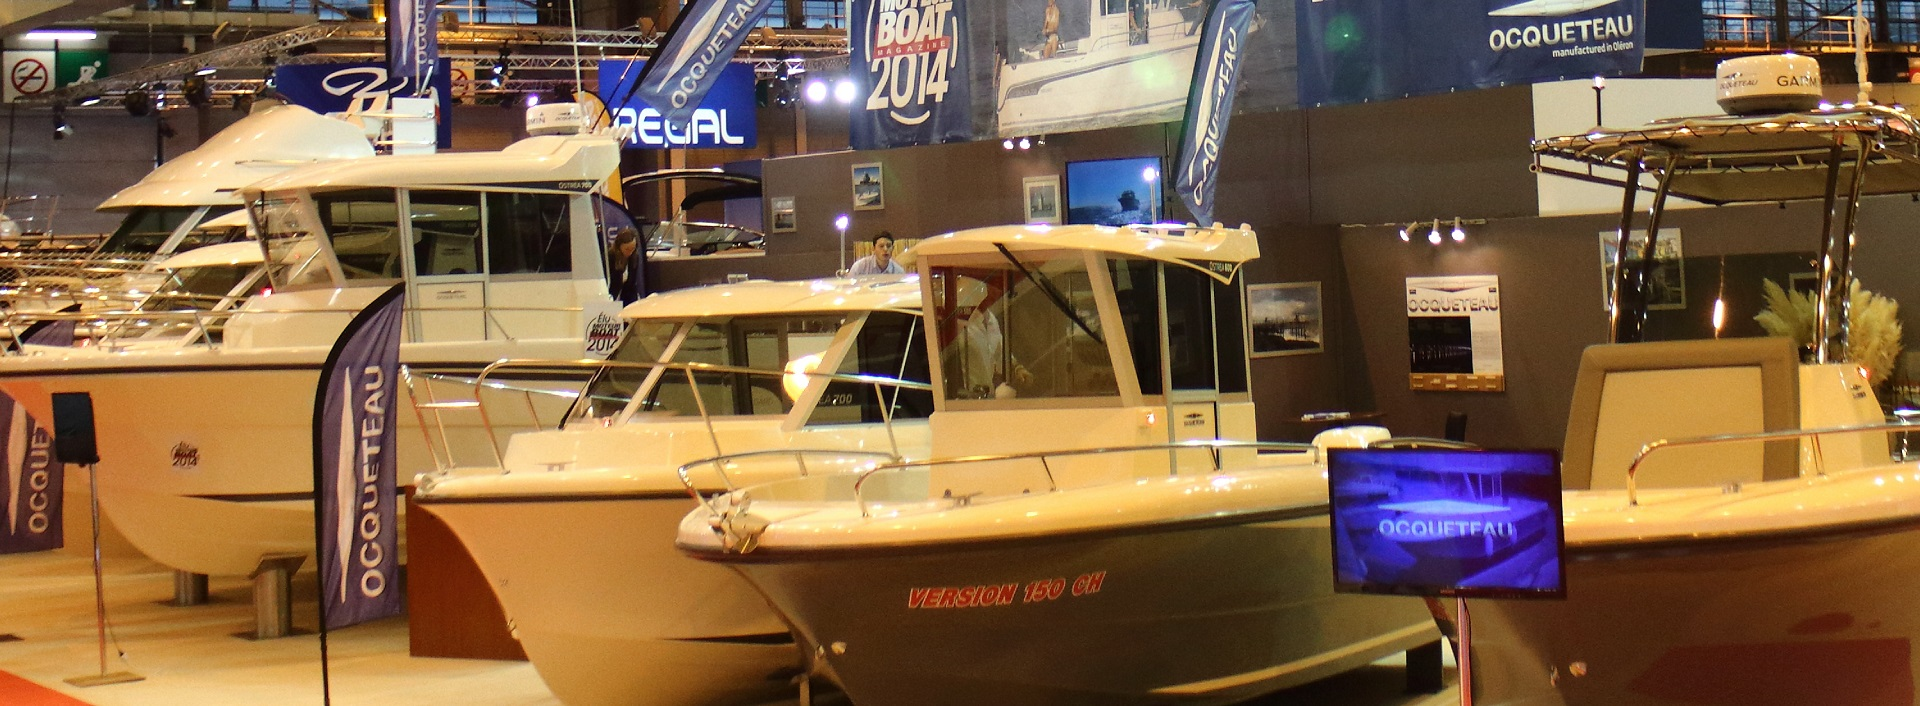 OCQUETEAU and EC Leisurecraft will be at London Boat Show